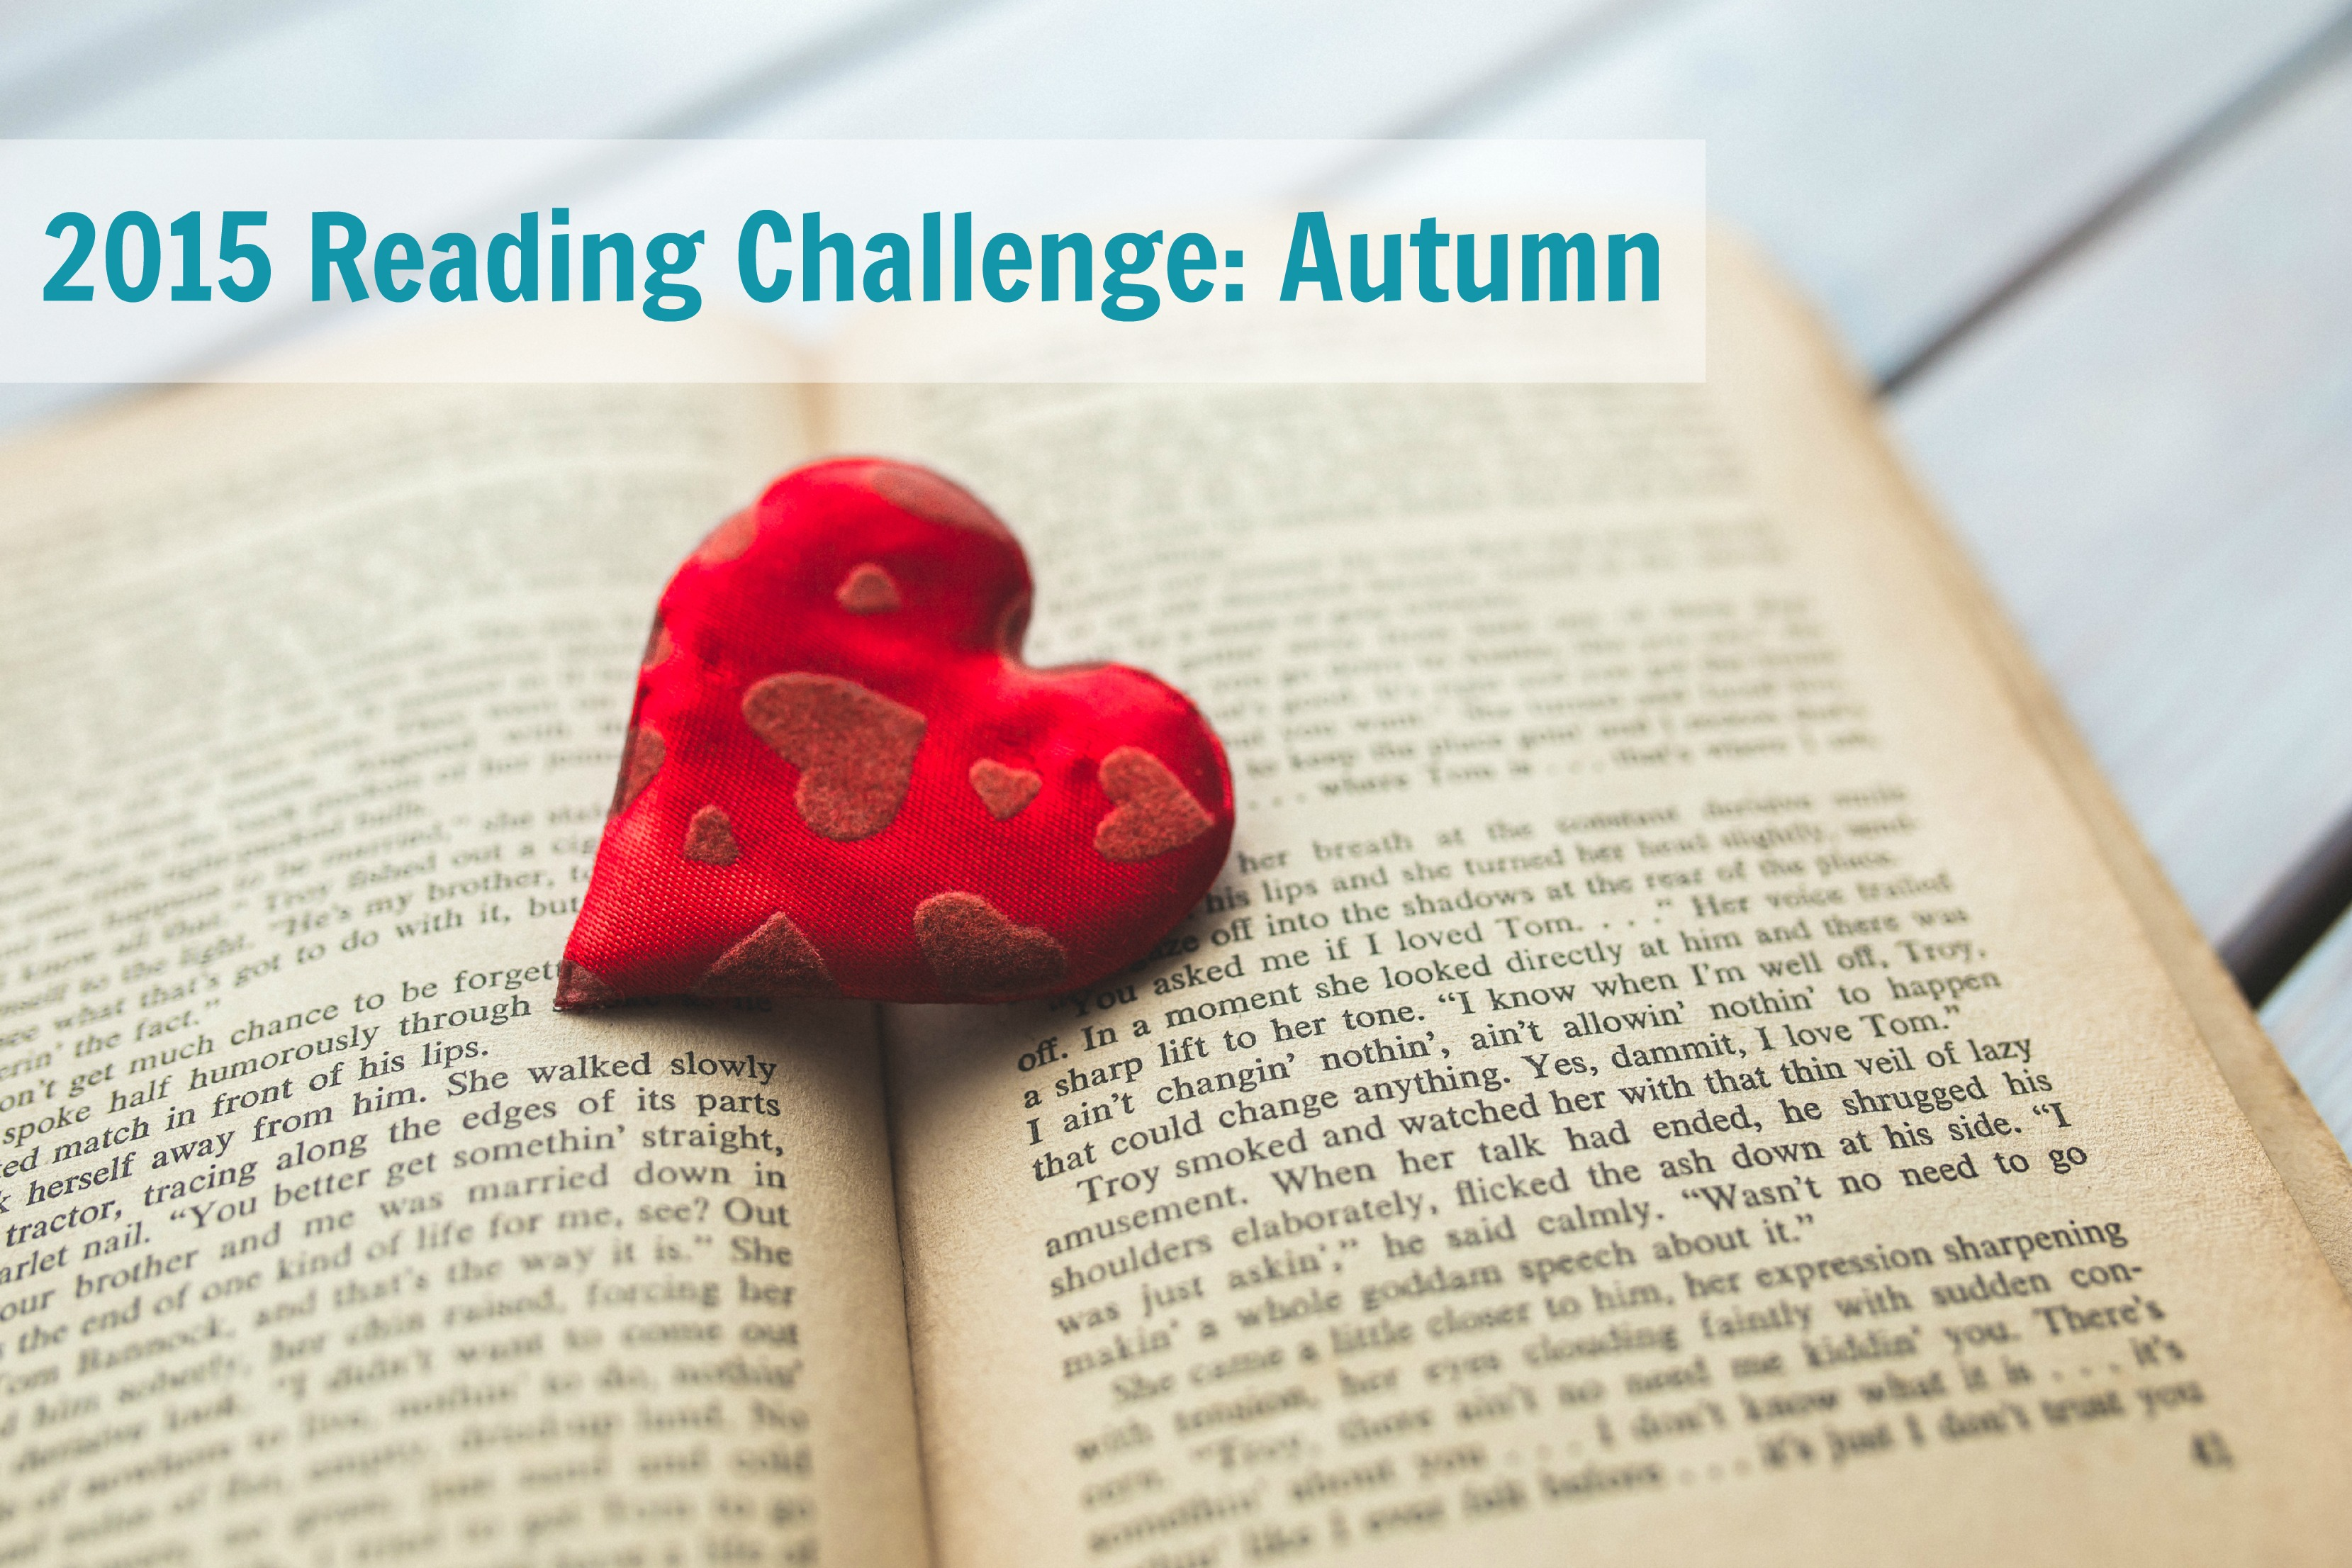 2015 Reading Challenge: Autumn